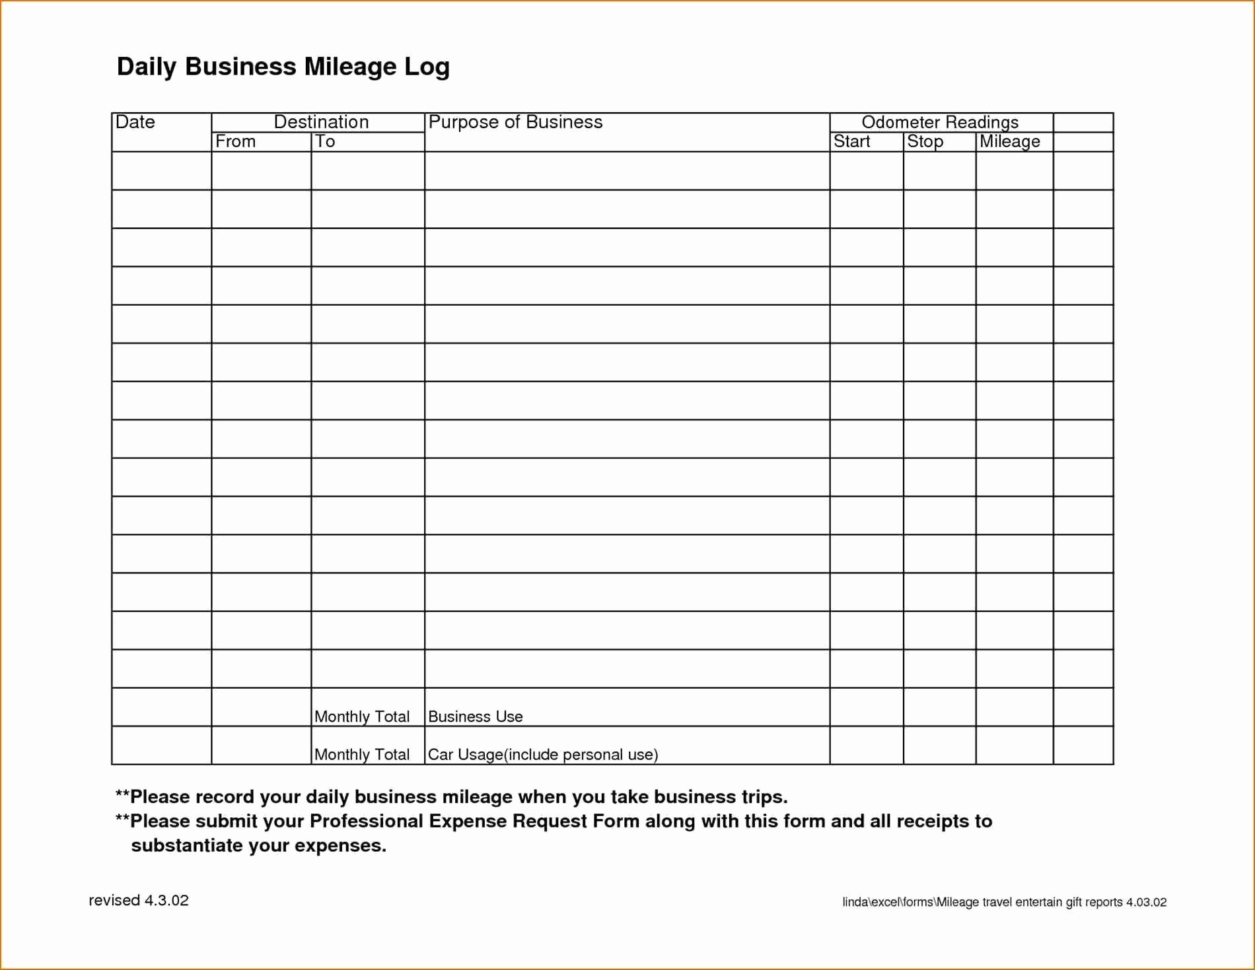 Mileage Spreadsheet Template Intended For Business Mileage Log Template Example Of Printable Mileage Log